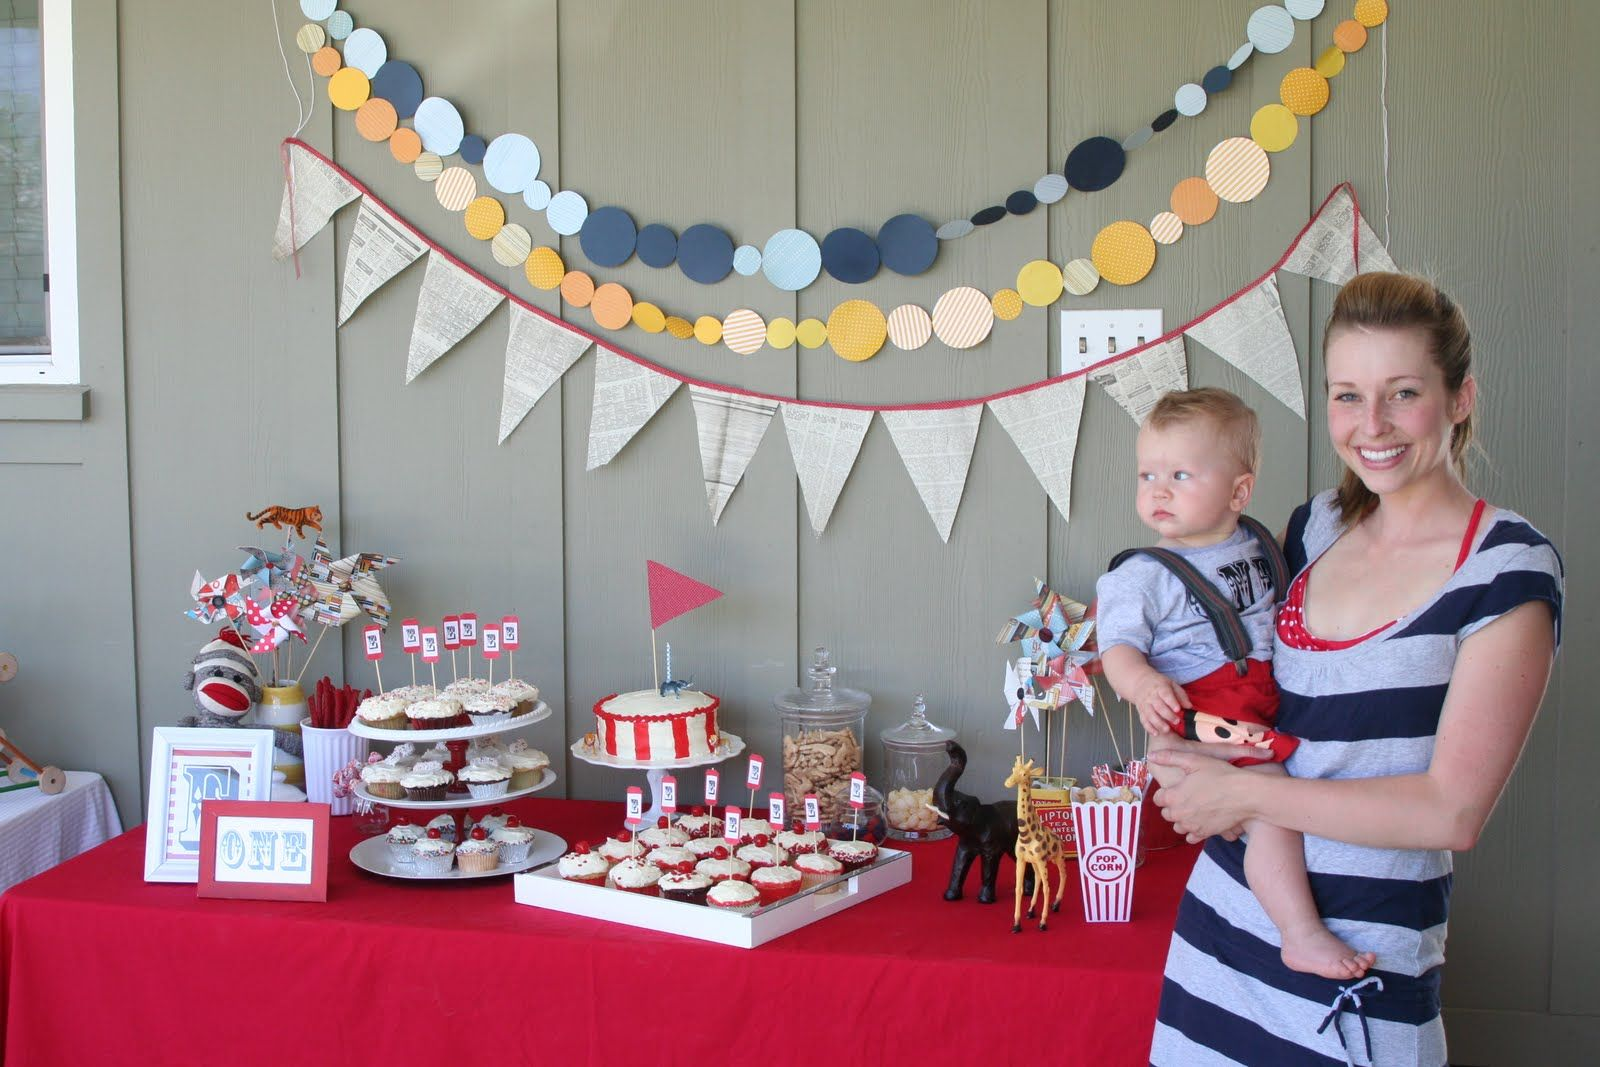 Ignore that chick and baby this is a super cute crafty circus theme